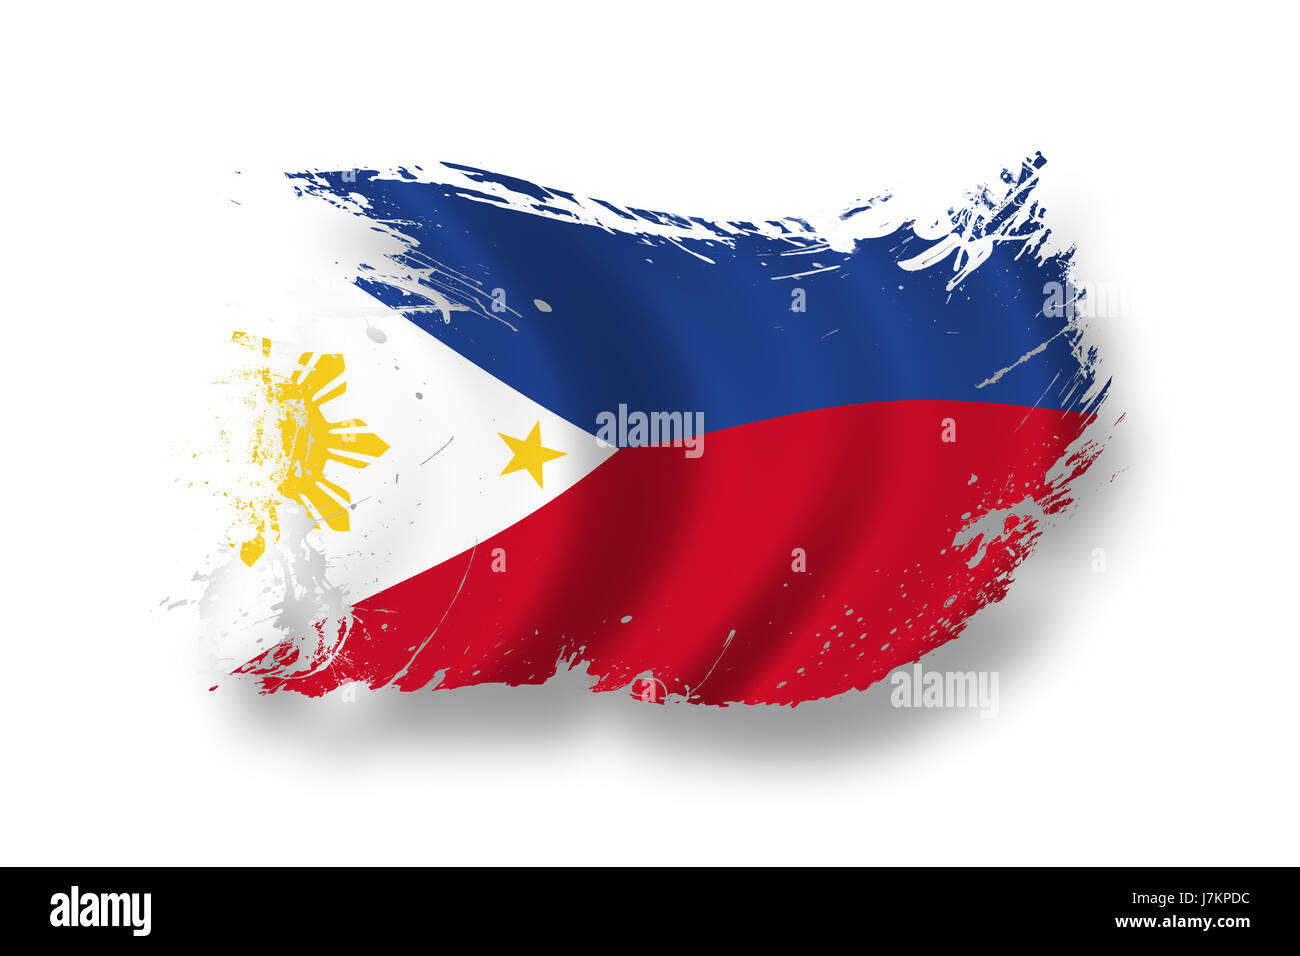 Flag philippines national flag blow philippines national pictogram flag philippines national flag blow philippines national pictogram symbol buycottarizona Images